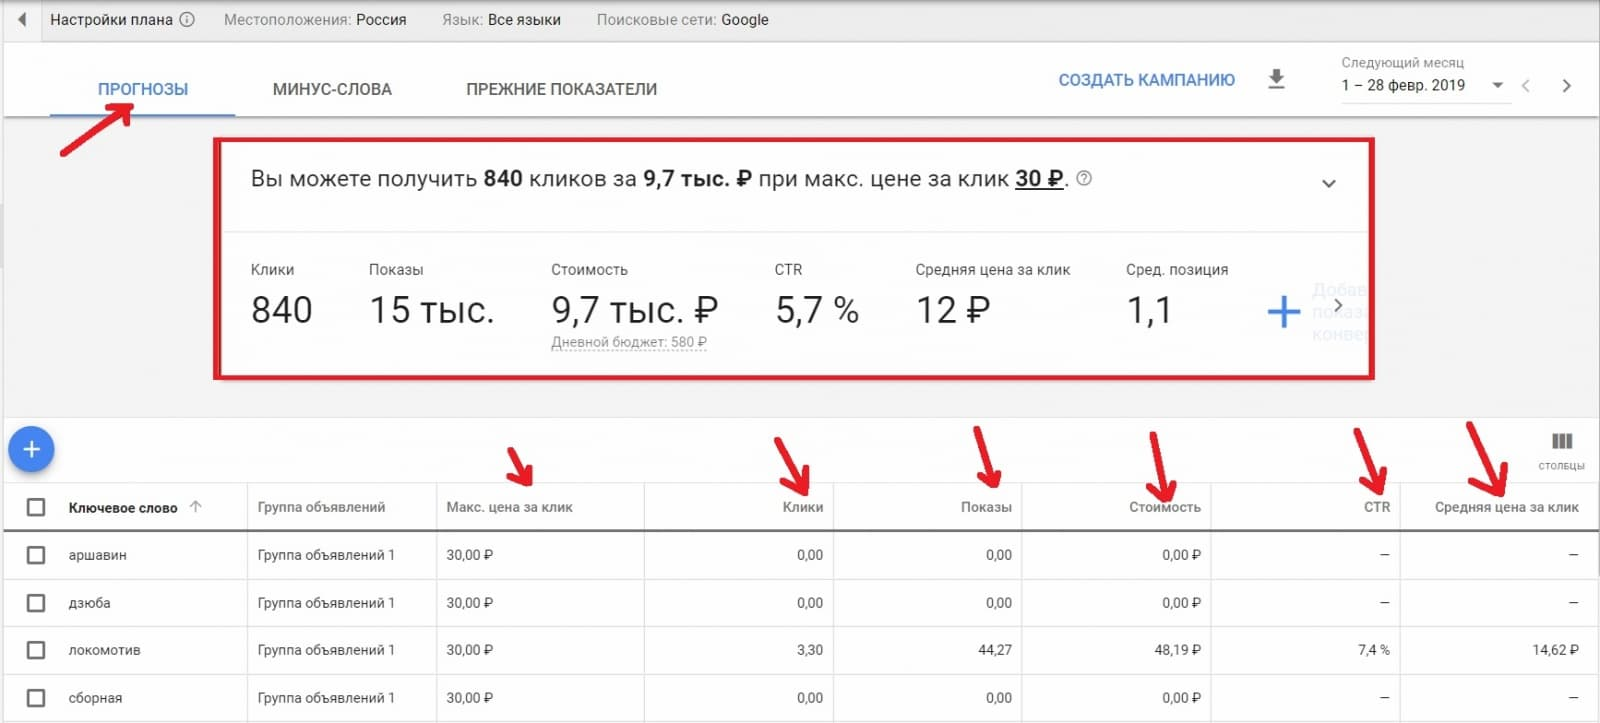 Статистика по ключам в Google AdWords